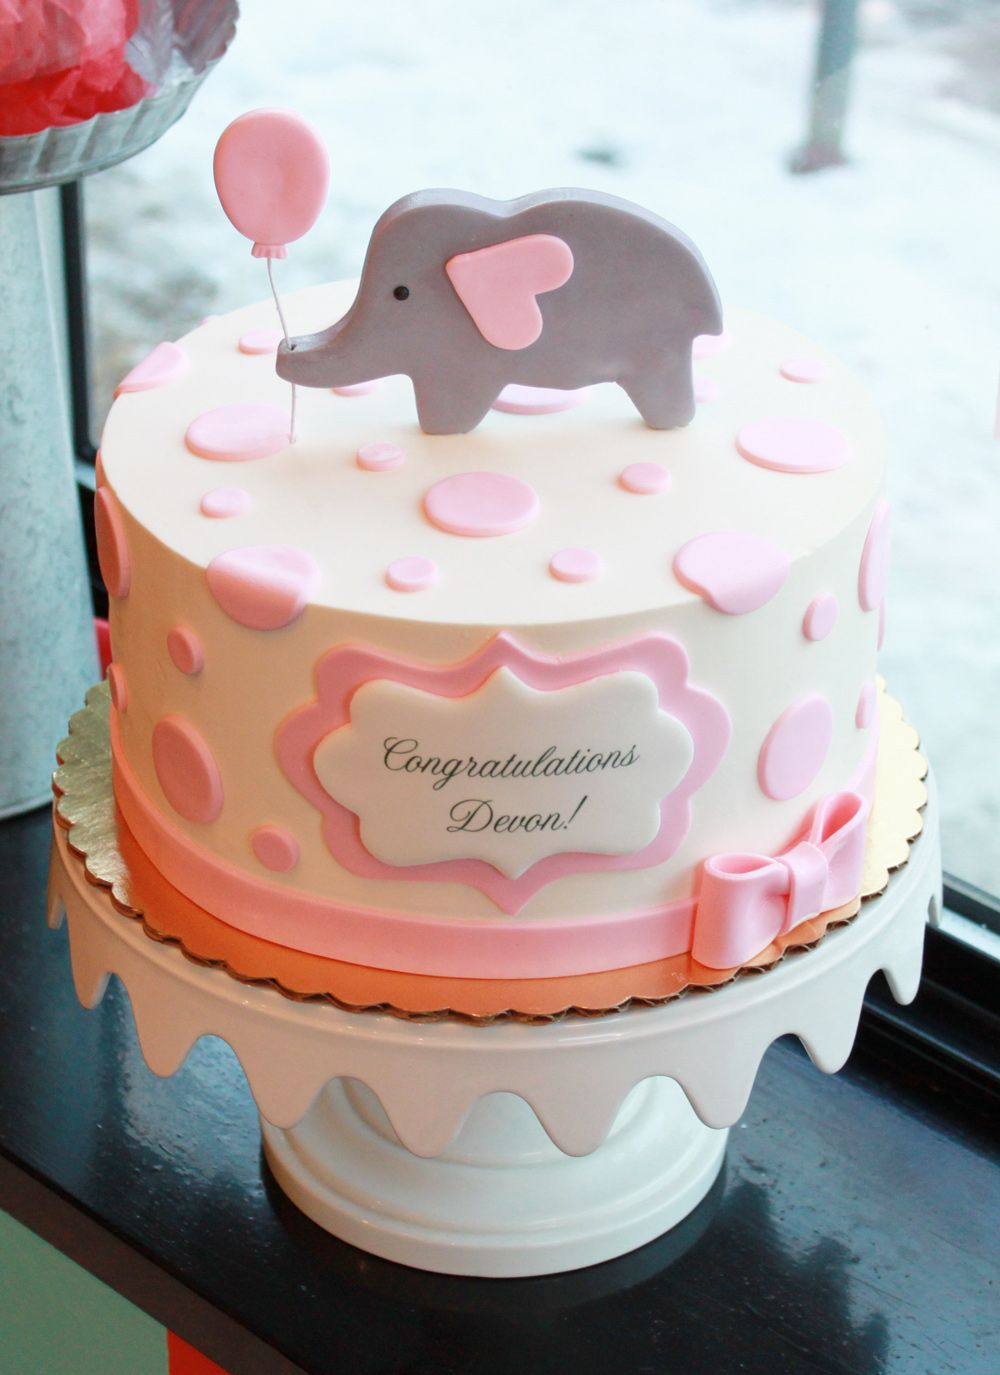 Delightful 50 Gorgeous Baby Shower Cakes | Stay At Home Mum